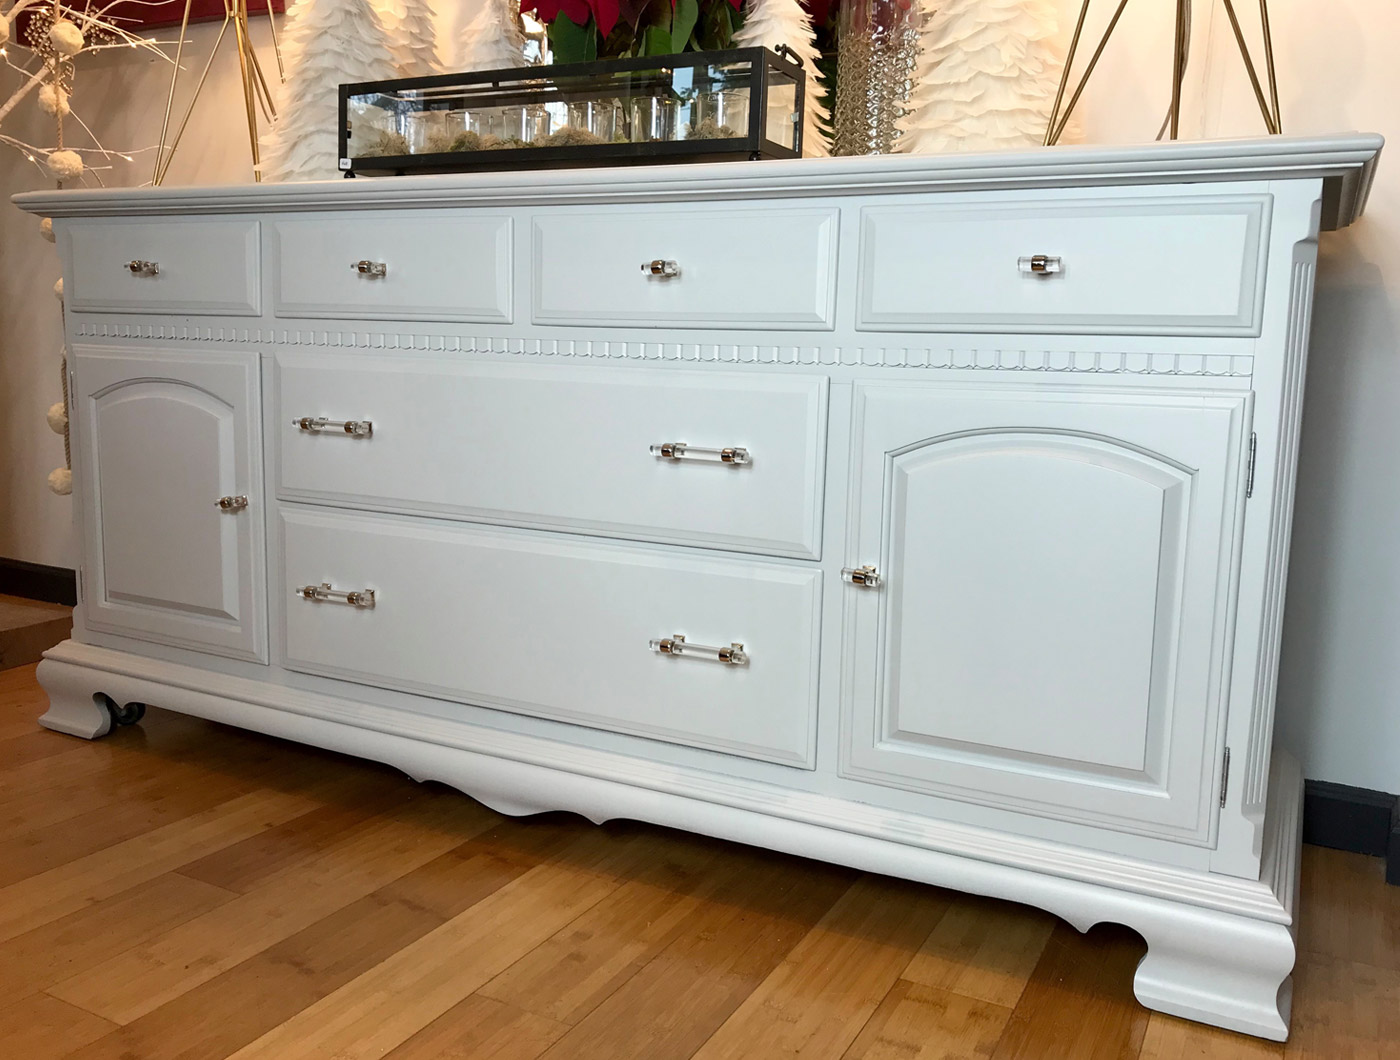 Ethan Allen Credenza Dresser - The Phinery Furniture Seattle